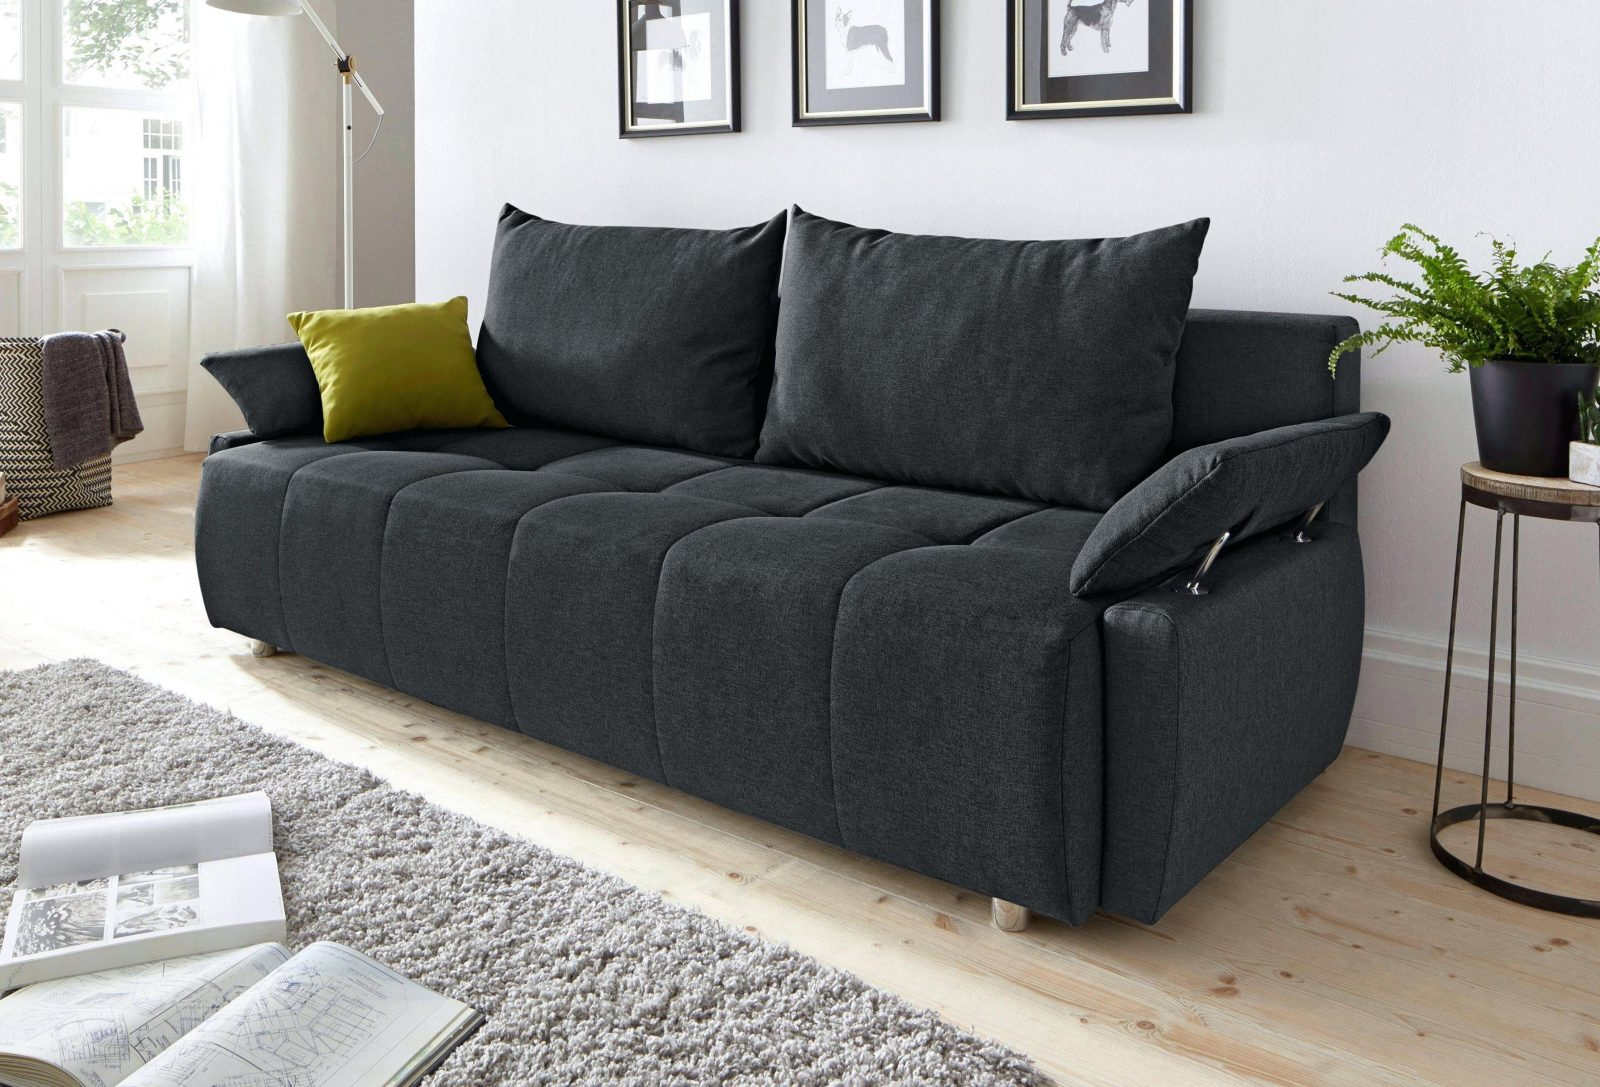 otto schlafsofa mit bettkasten haus design ideen. Black Bedroom Furniture Sets. Home Design Ideas